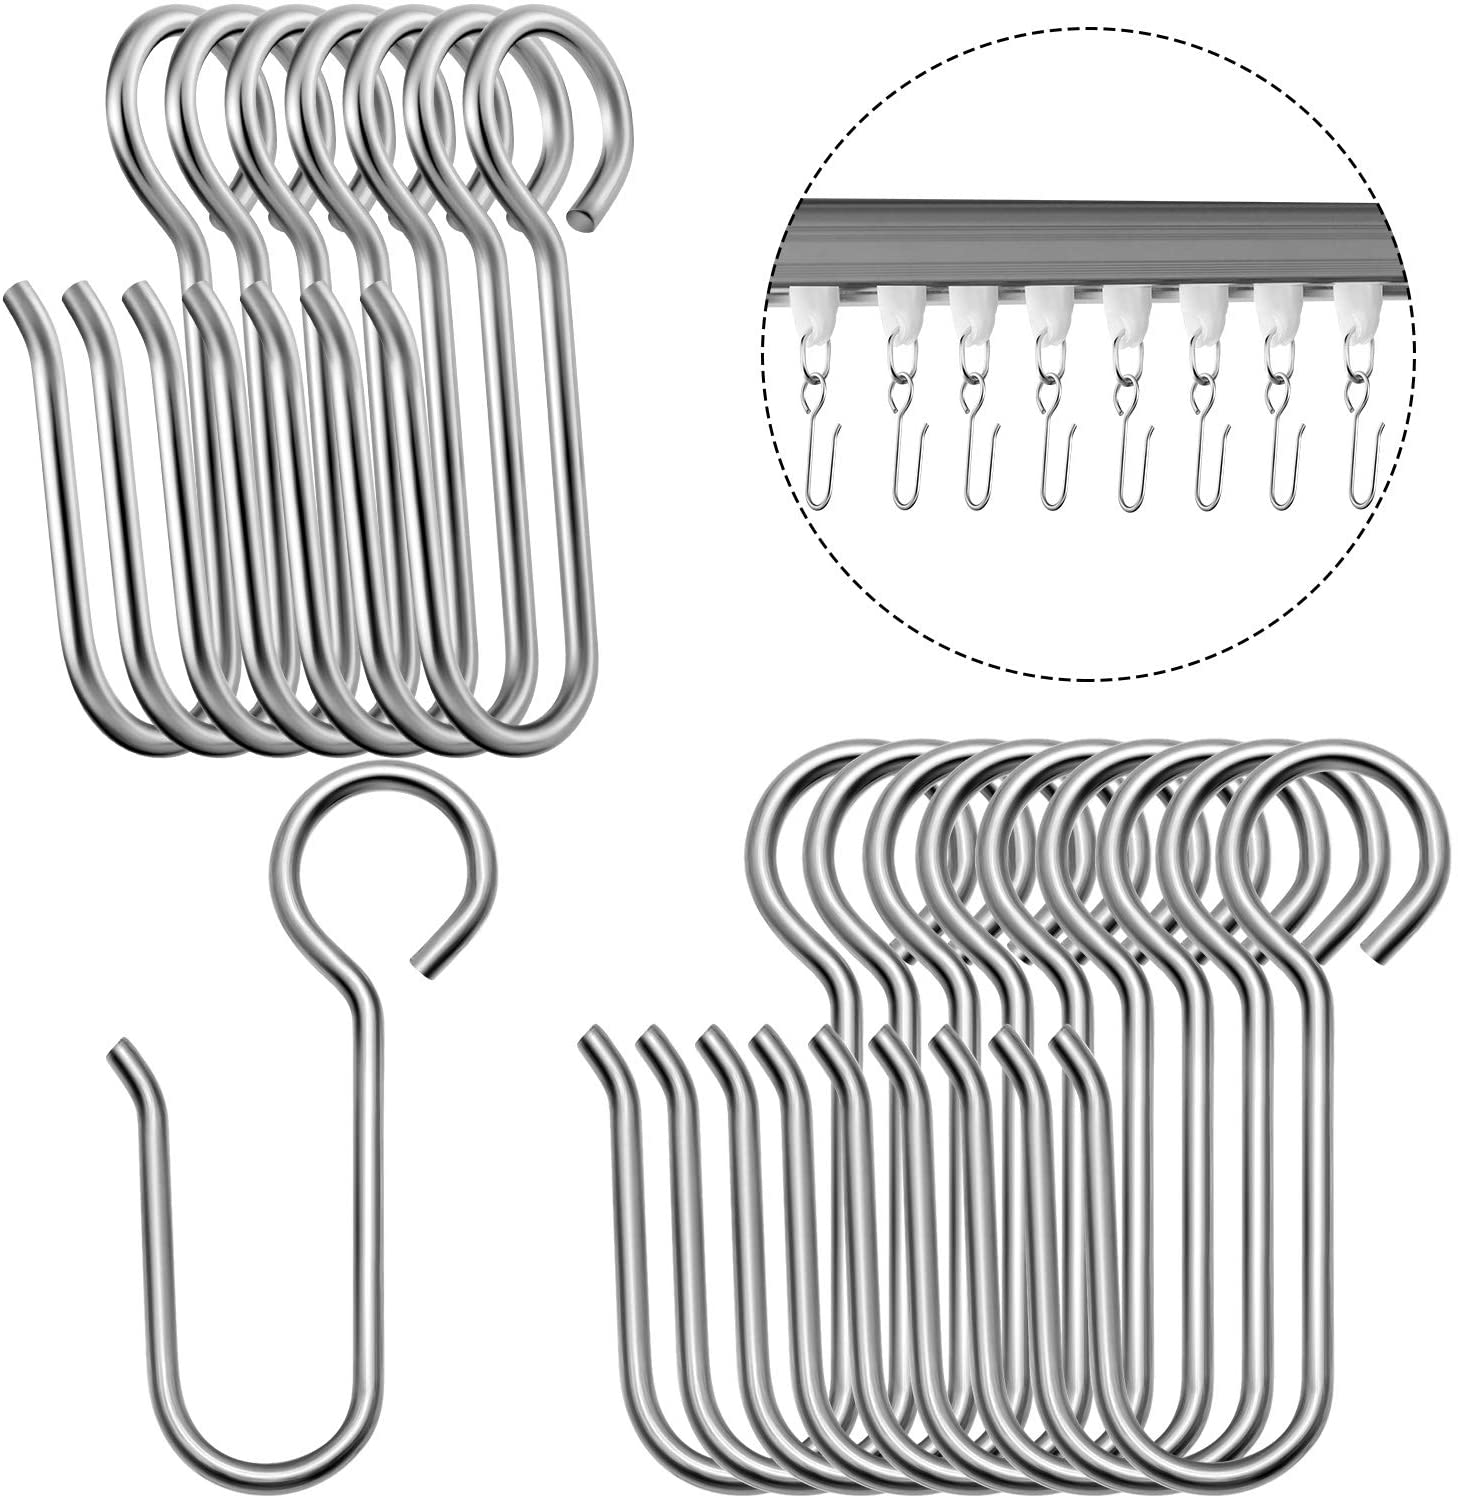 Metal Curtain Track Hooks S Shaped Small Curtain Hooks Stainless Steel  Drape Wire Hooks for Ceiling Curtain Drape Track 20